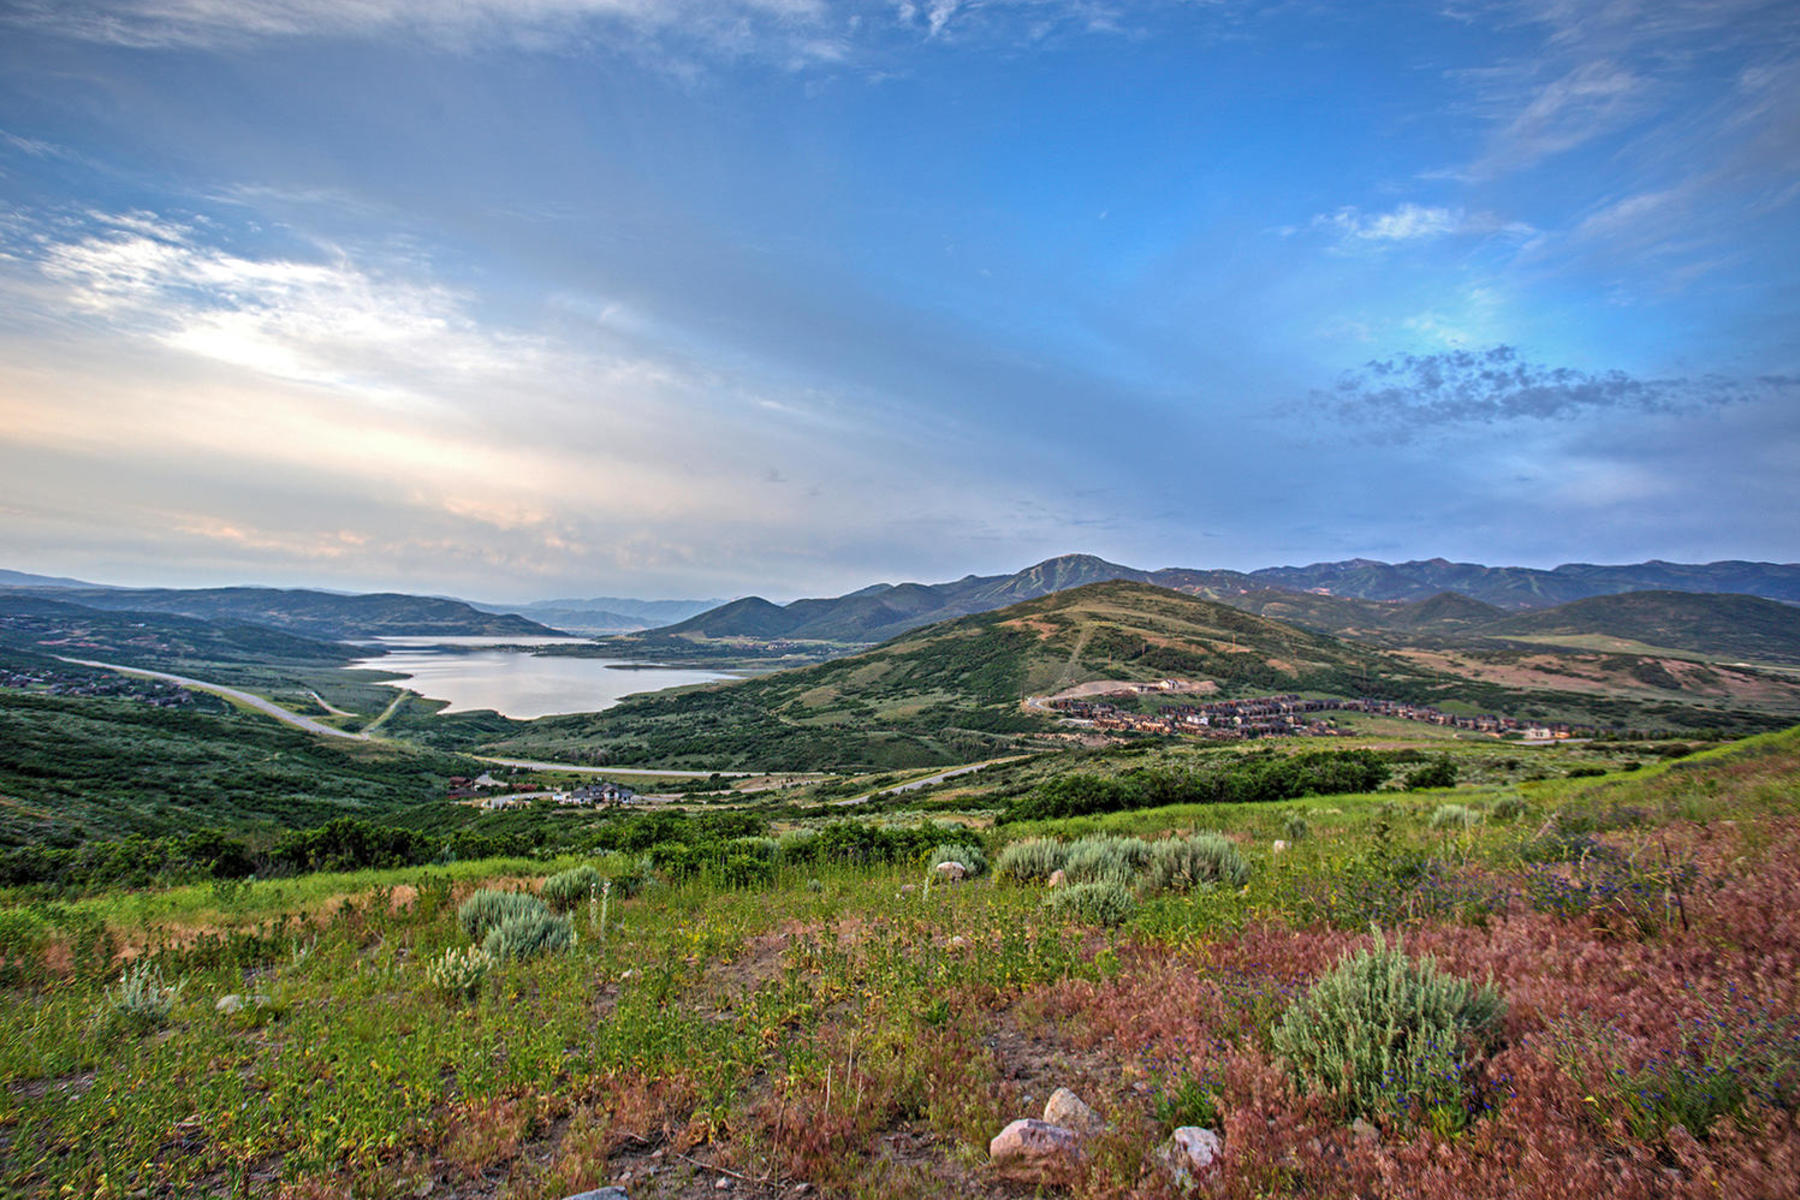 Land for Sale at Come Experience the Gated Community of Deer Vista 240 W Vista Ridge Rd Lot 95 Heber City, Utah, 84032 United States